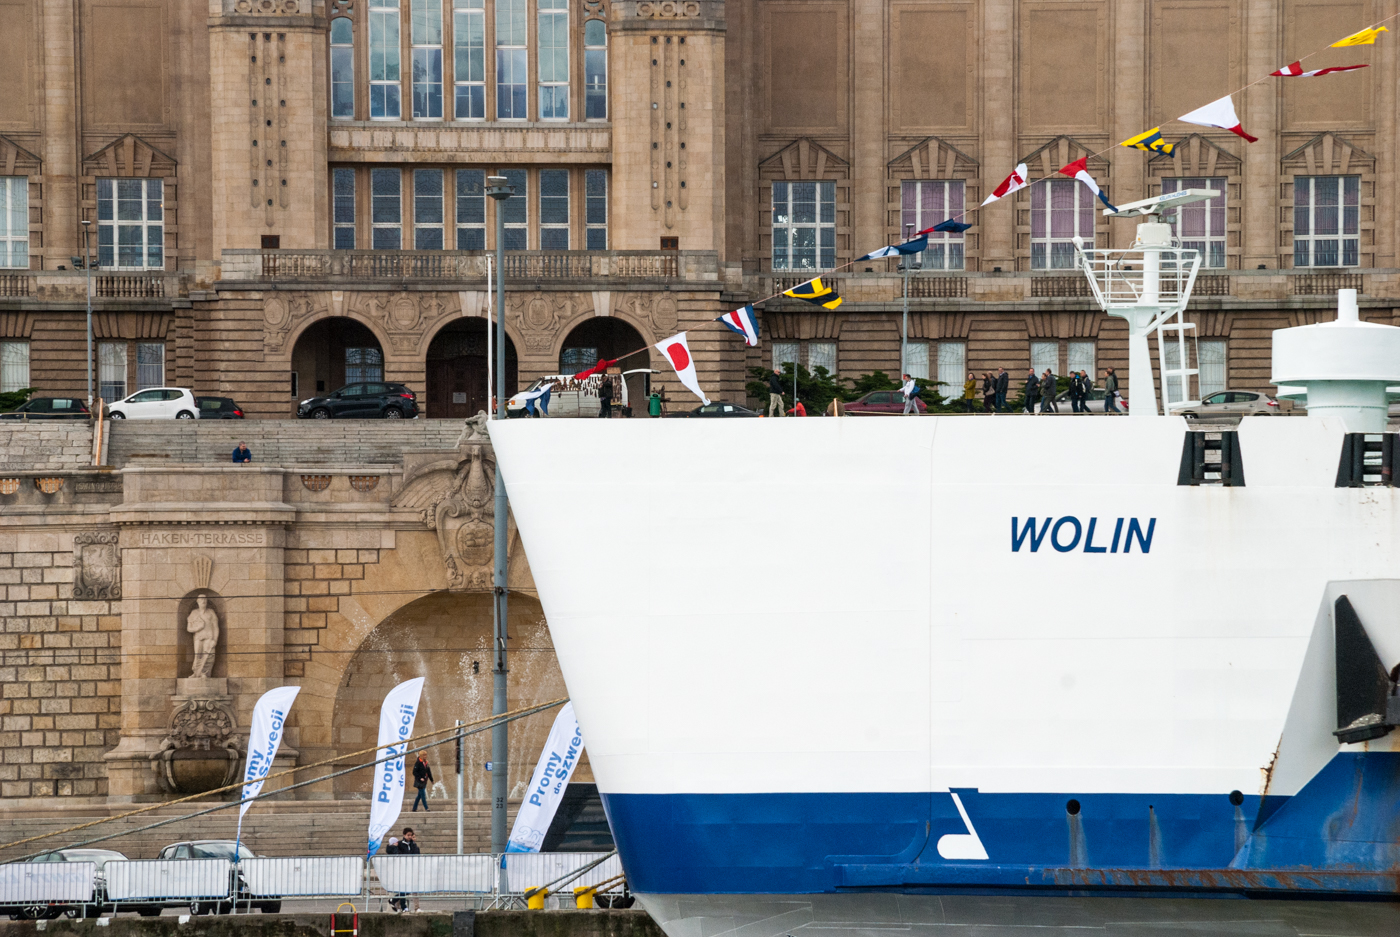 Unity Line Wolin